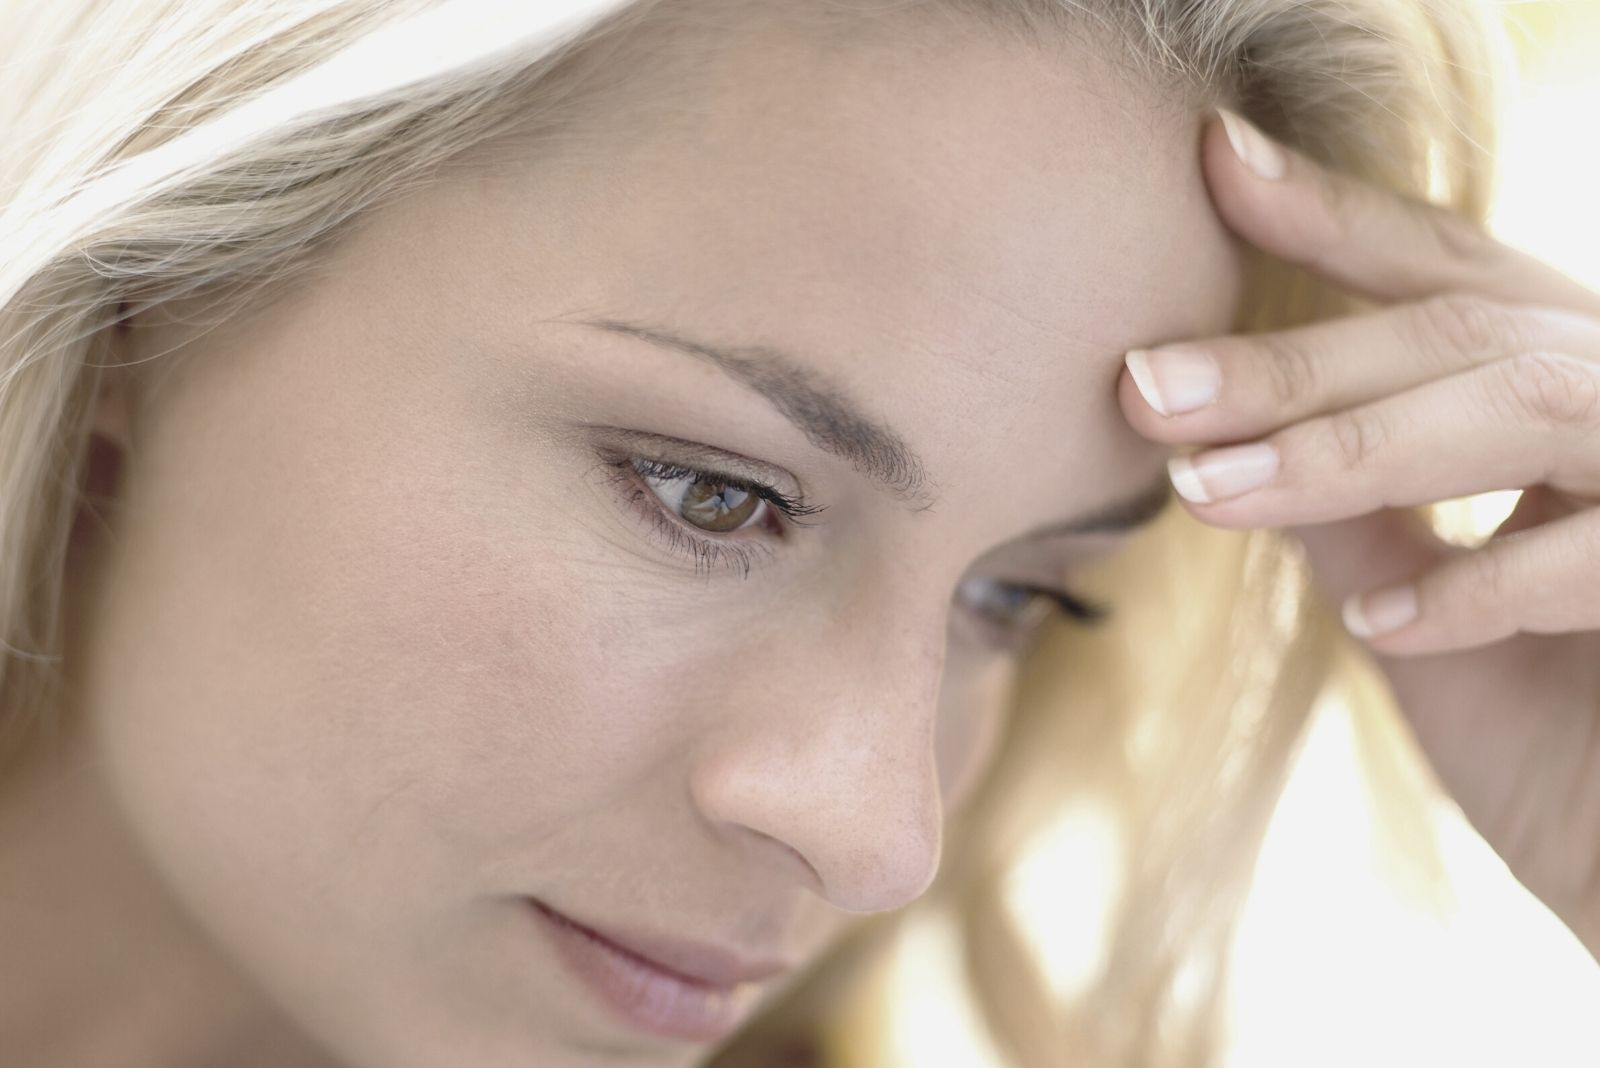 pensive blonde woman looking down and holding her head focus on her face